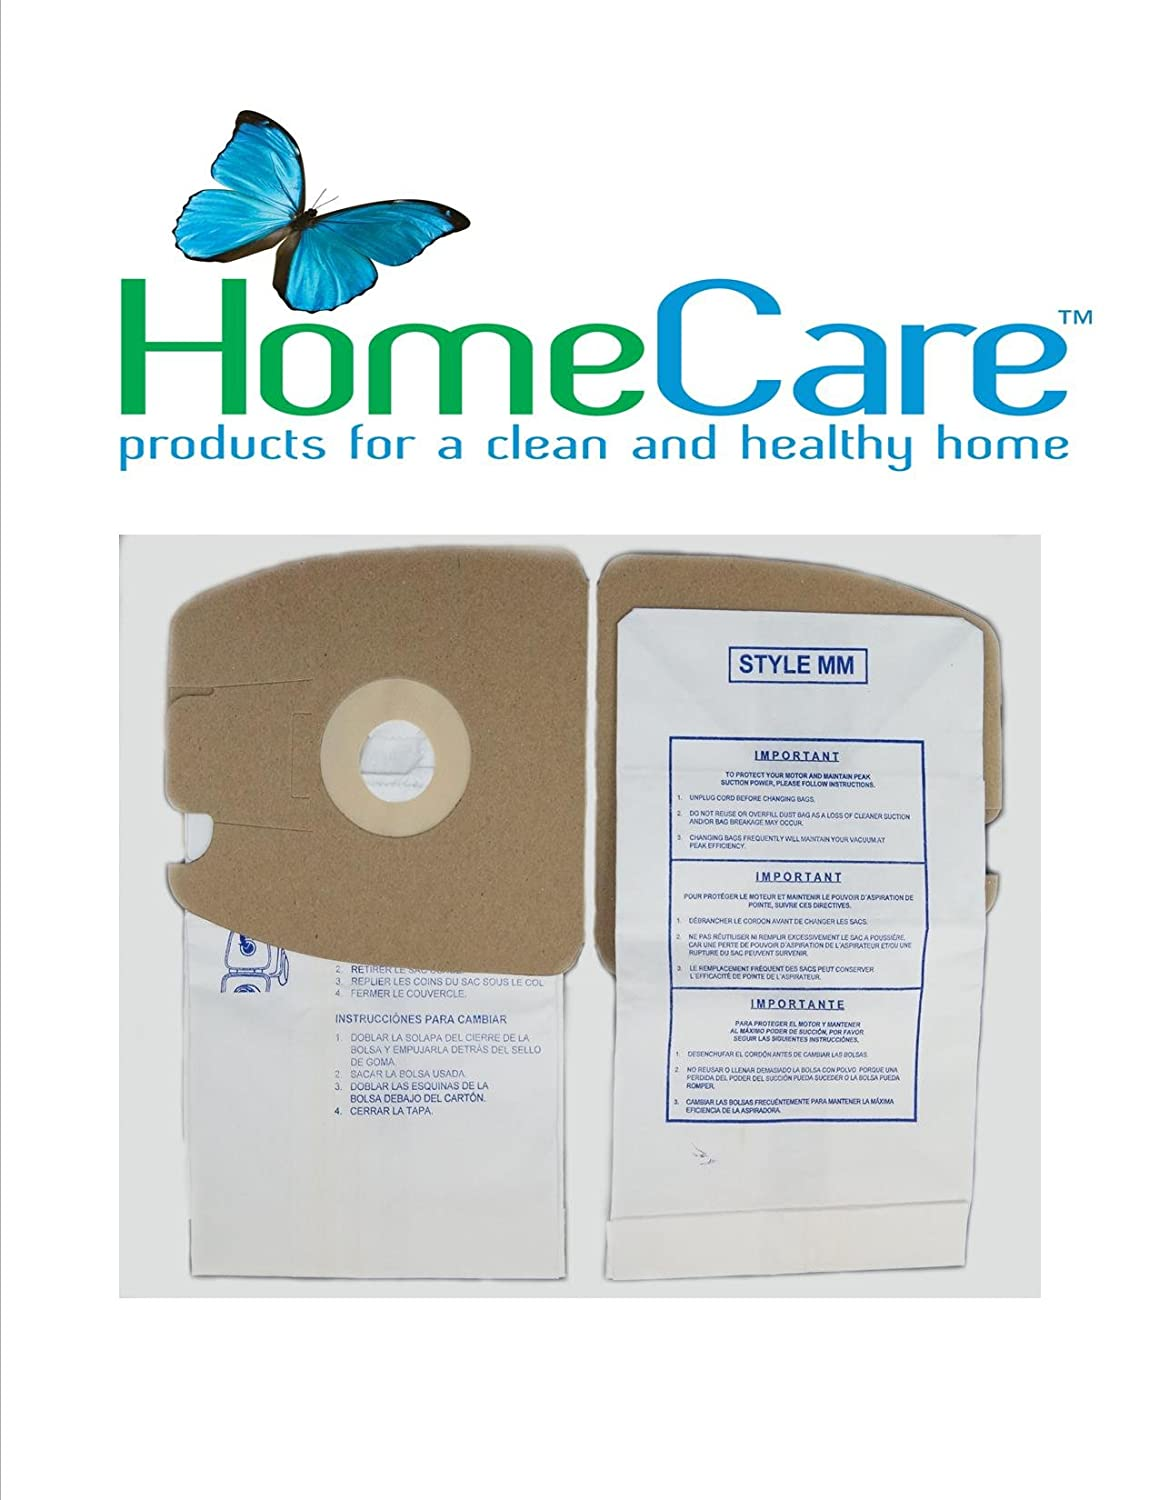 Eureka MM, Sanitaire MM Microlined Filtration Bags by Home Care Products, 10 bags 3600 Series Mighty Mite; 60295, 60296, 60297, 15790, 63253 B01M2TZXJH